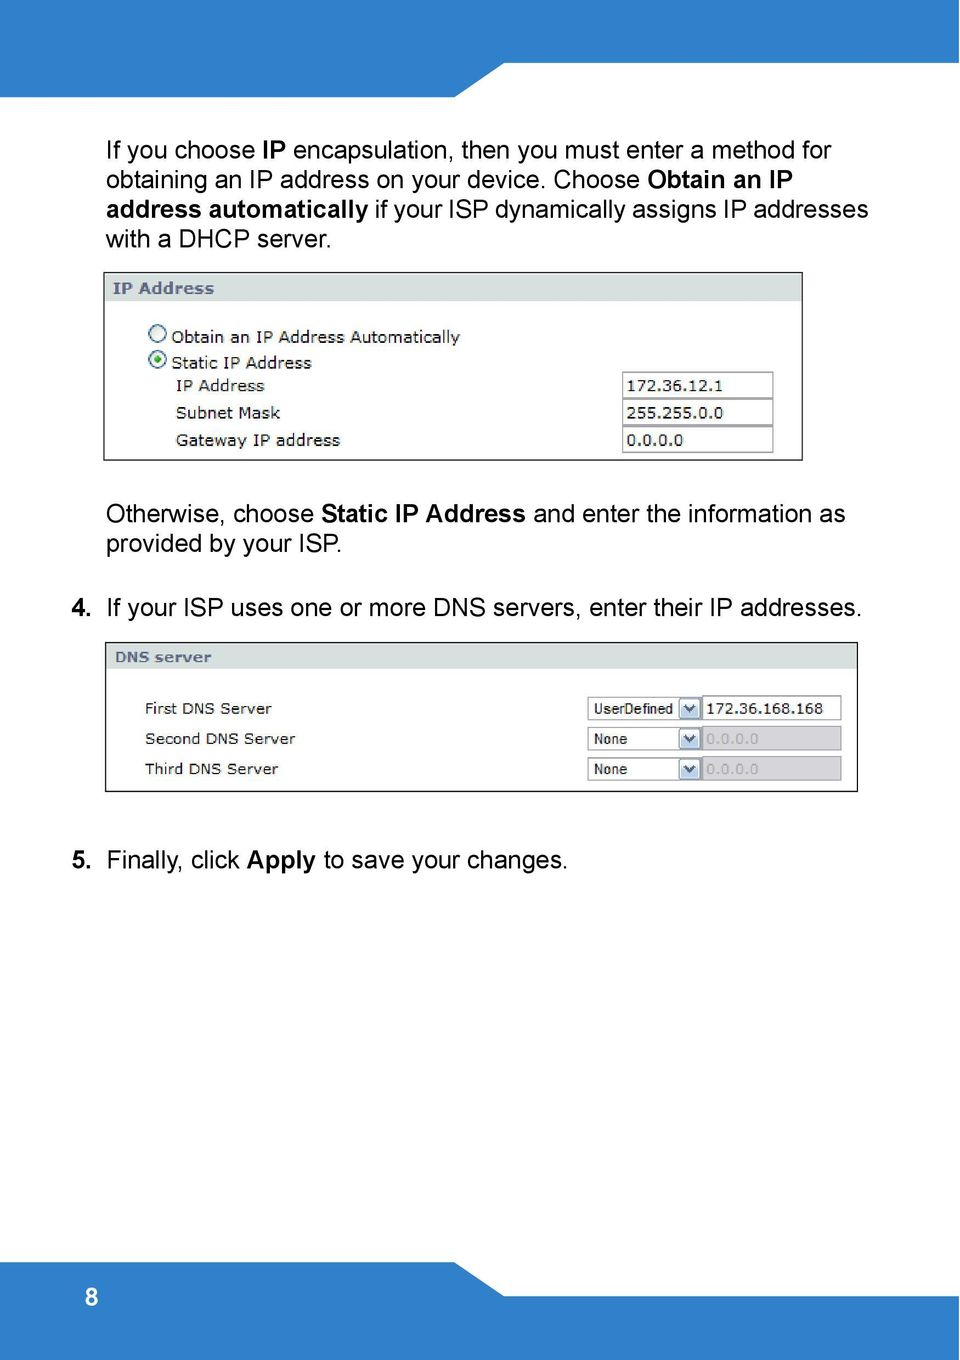 server. Otherwise, choose Static IP Address and enter the information as provided by your ISP. 4.